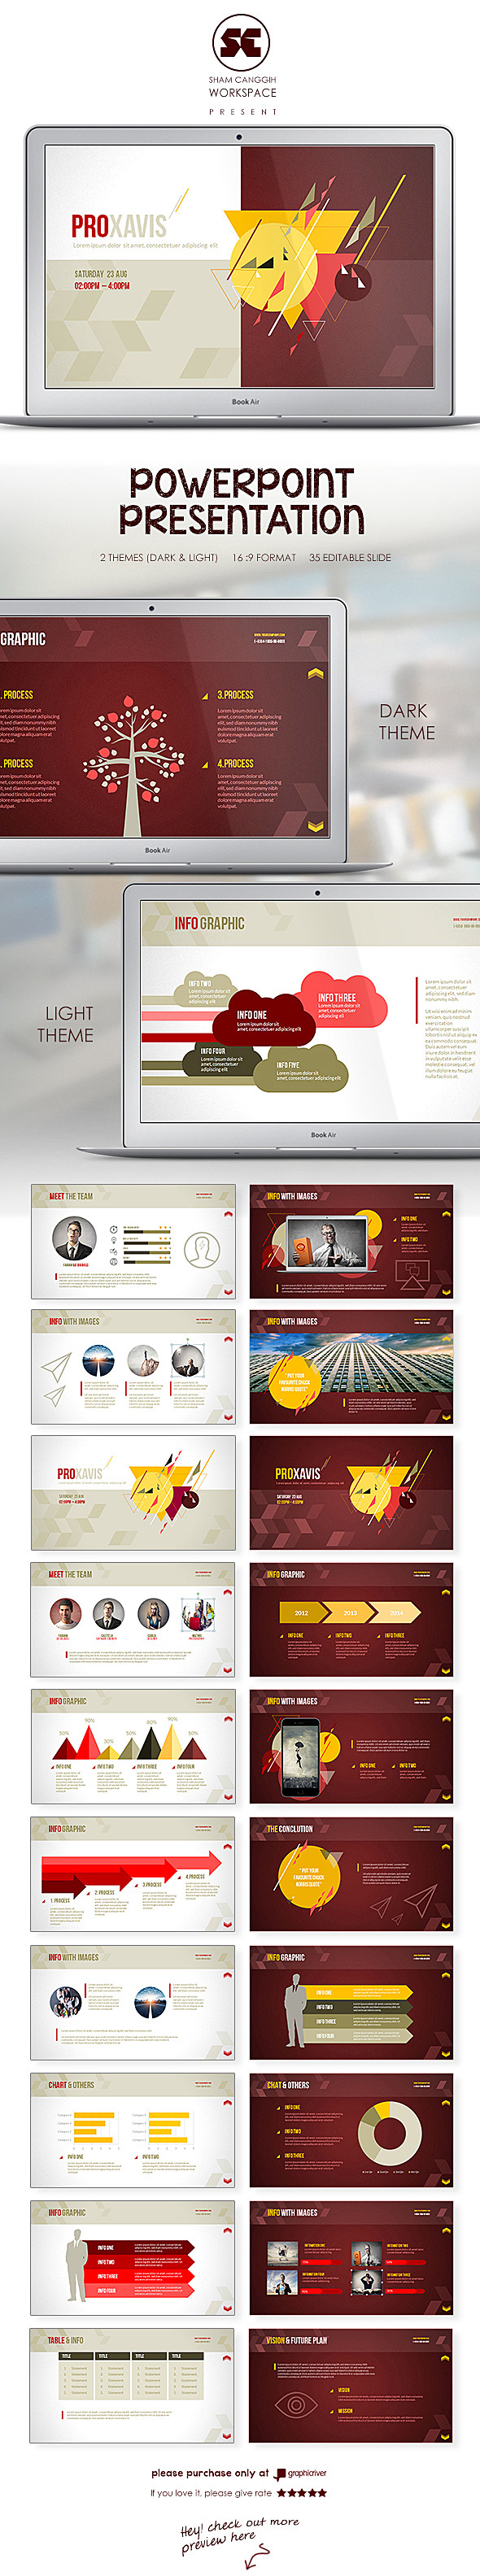 Elegant PowerPoint Presentation - Miscellaneous PowerPoint Templates